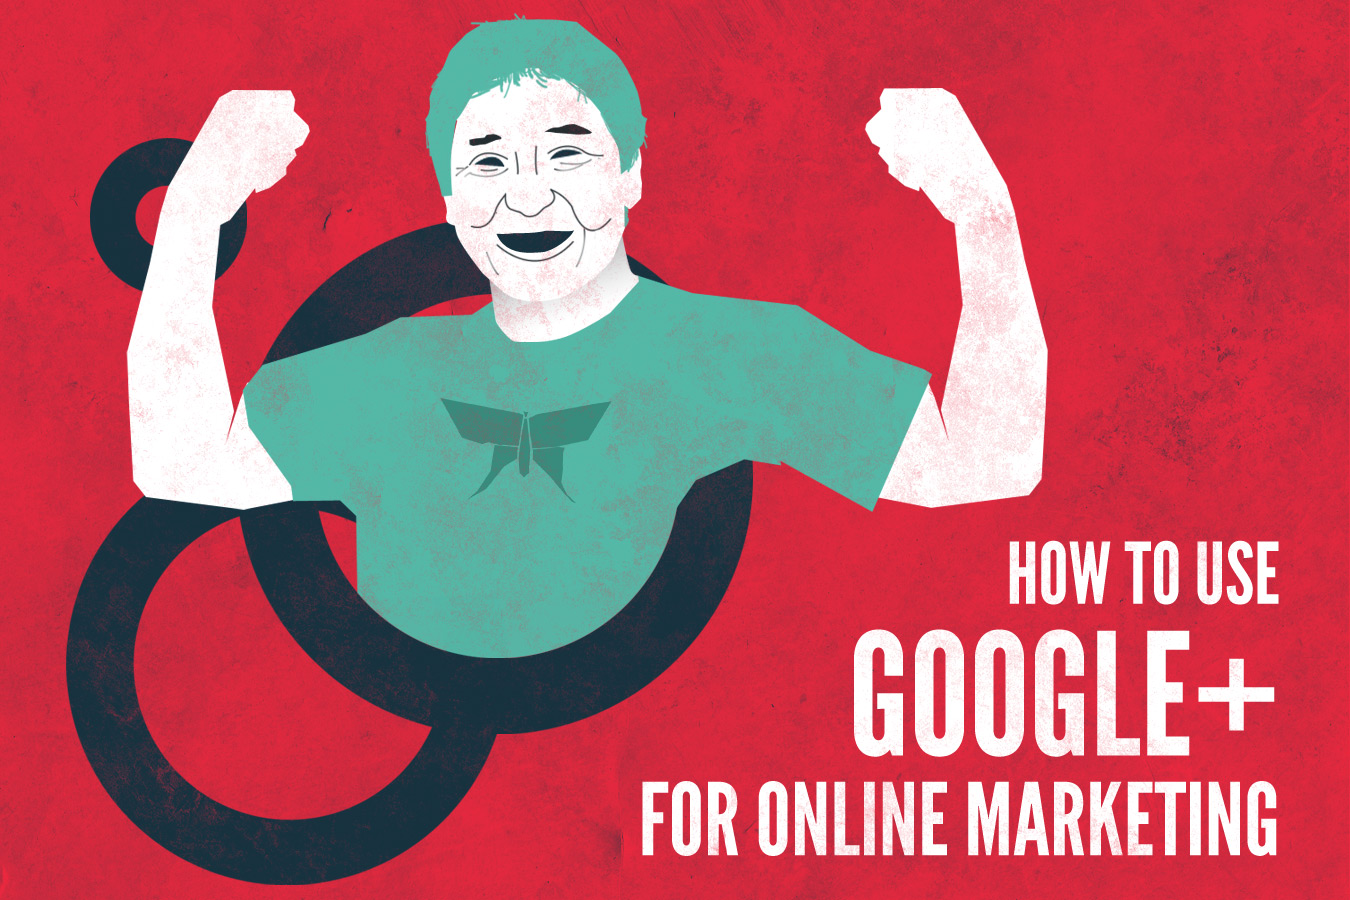 How to use Google Plus as part of your Marketing Strategy